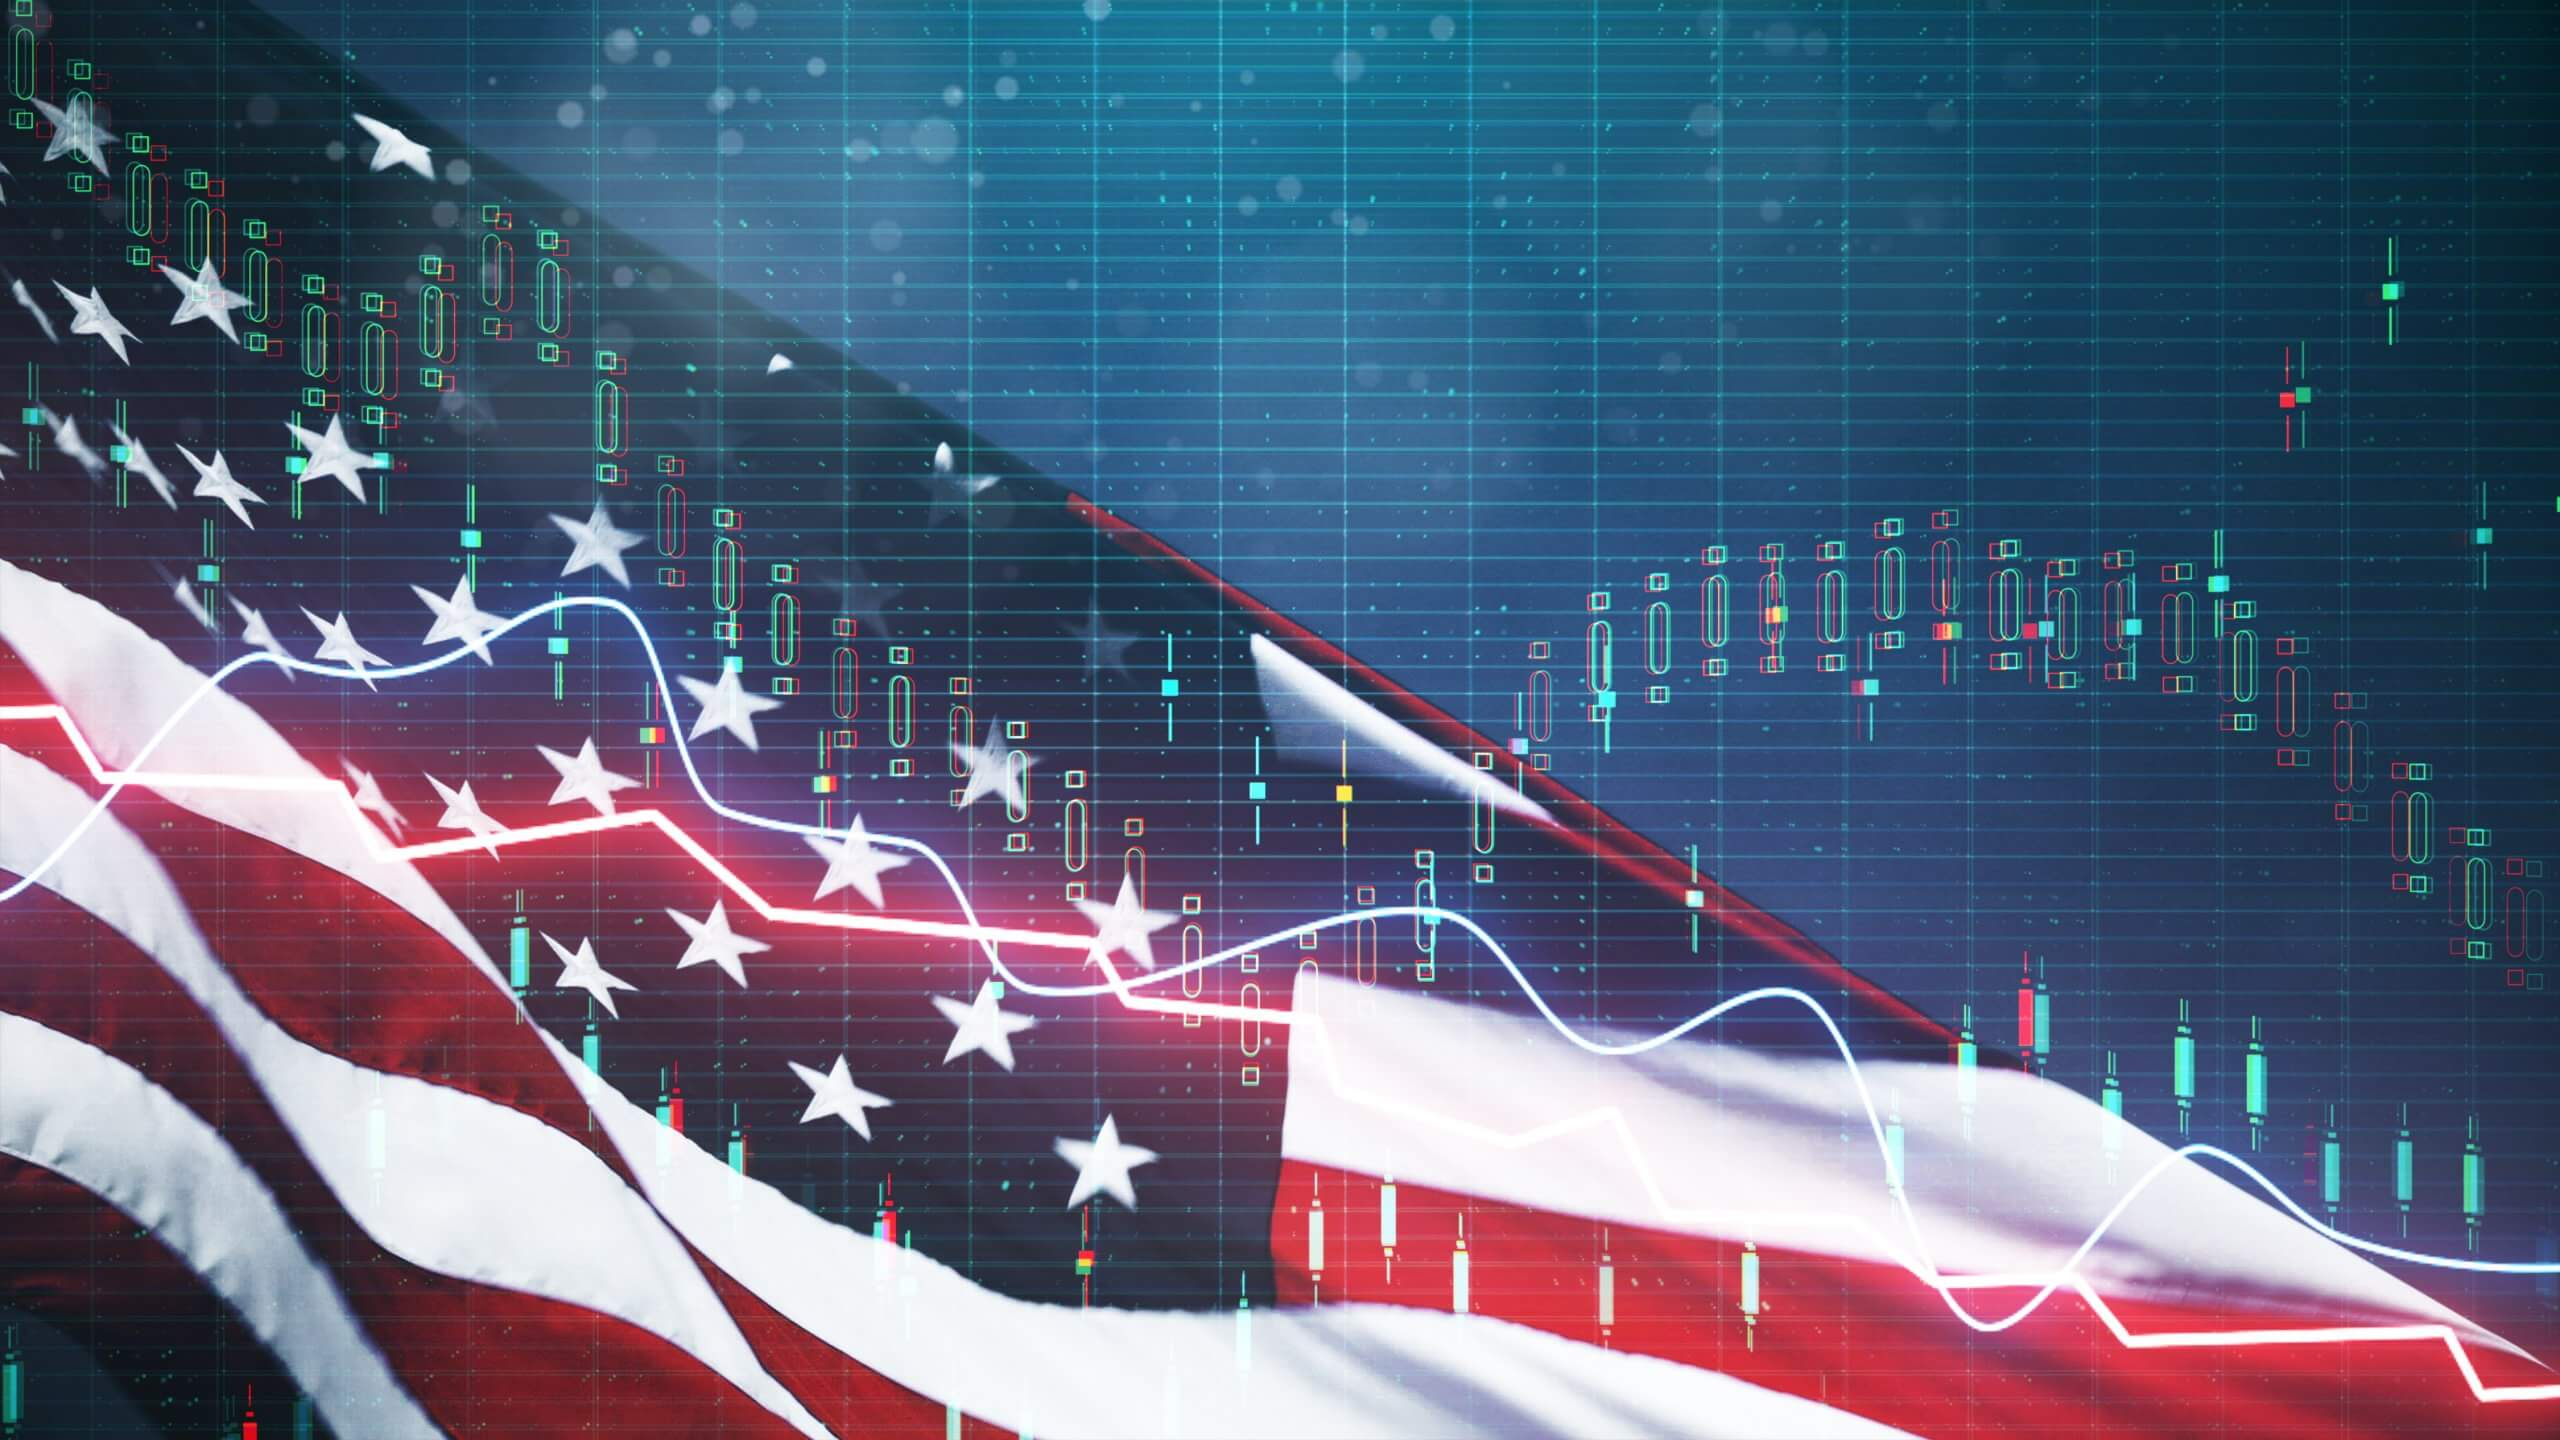 US stock market collapse like in 1987 again?